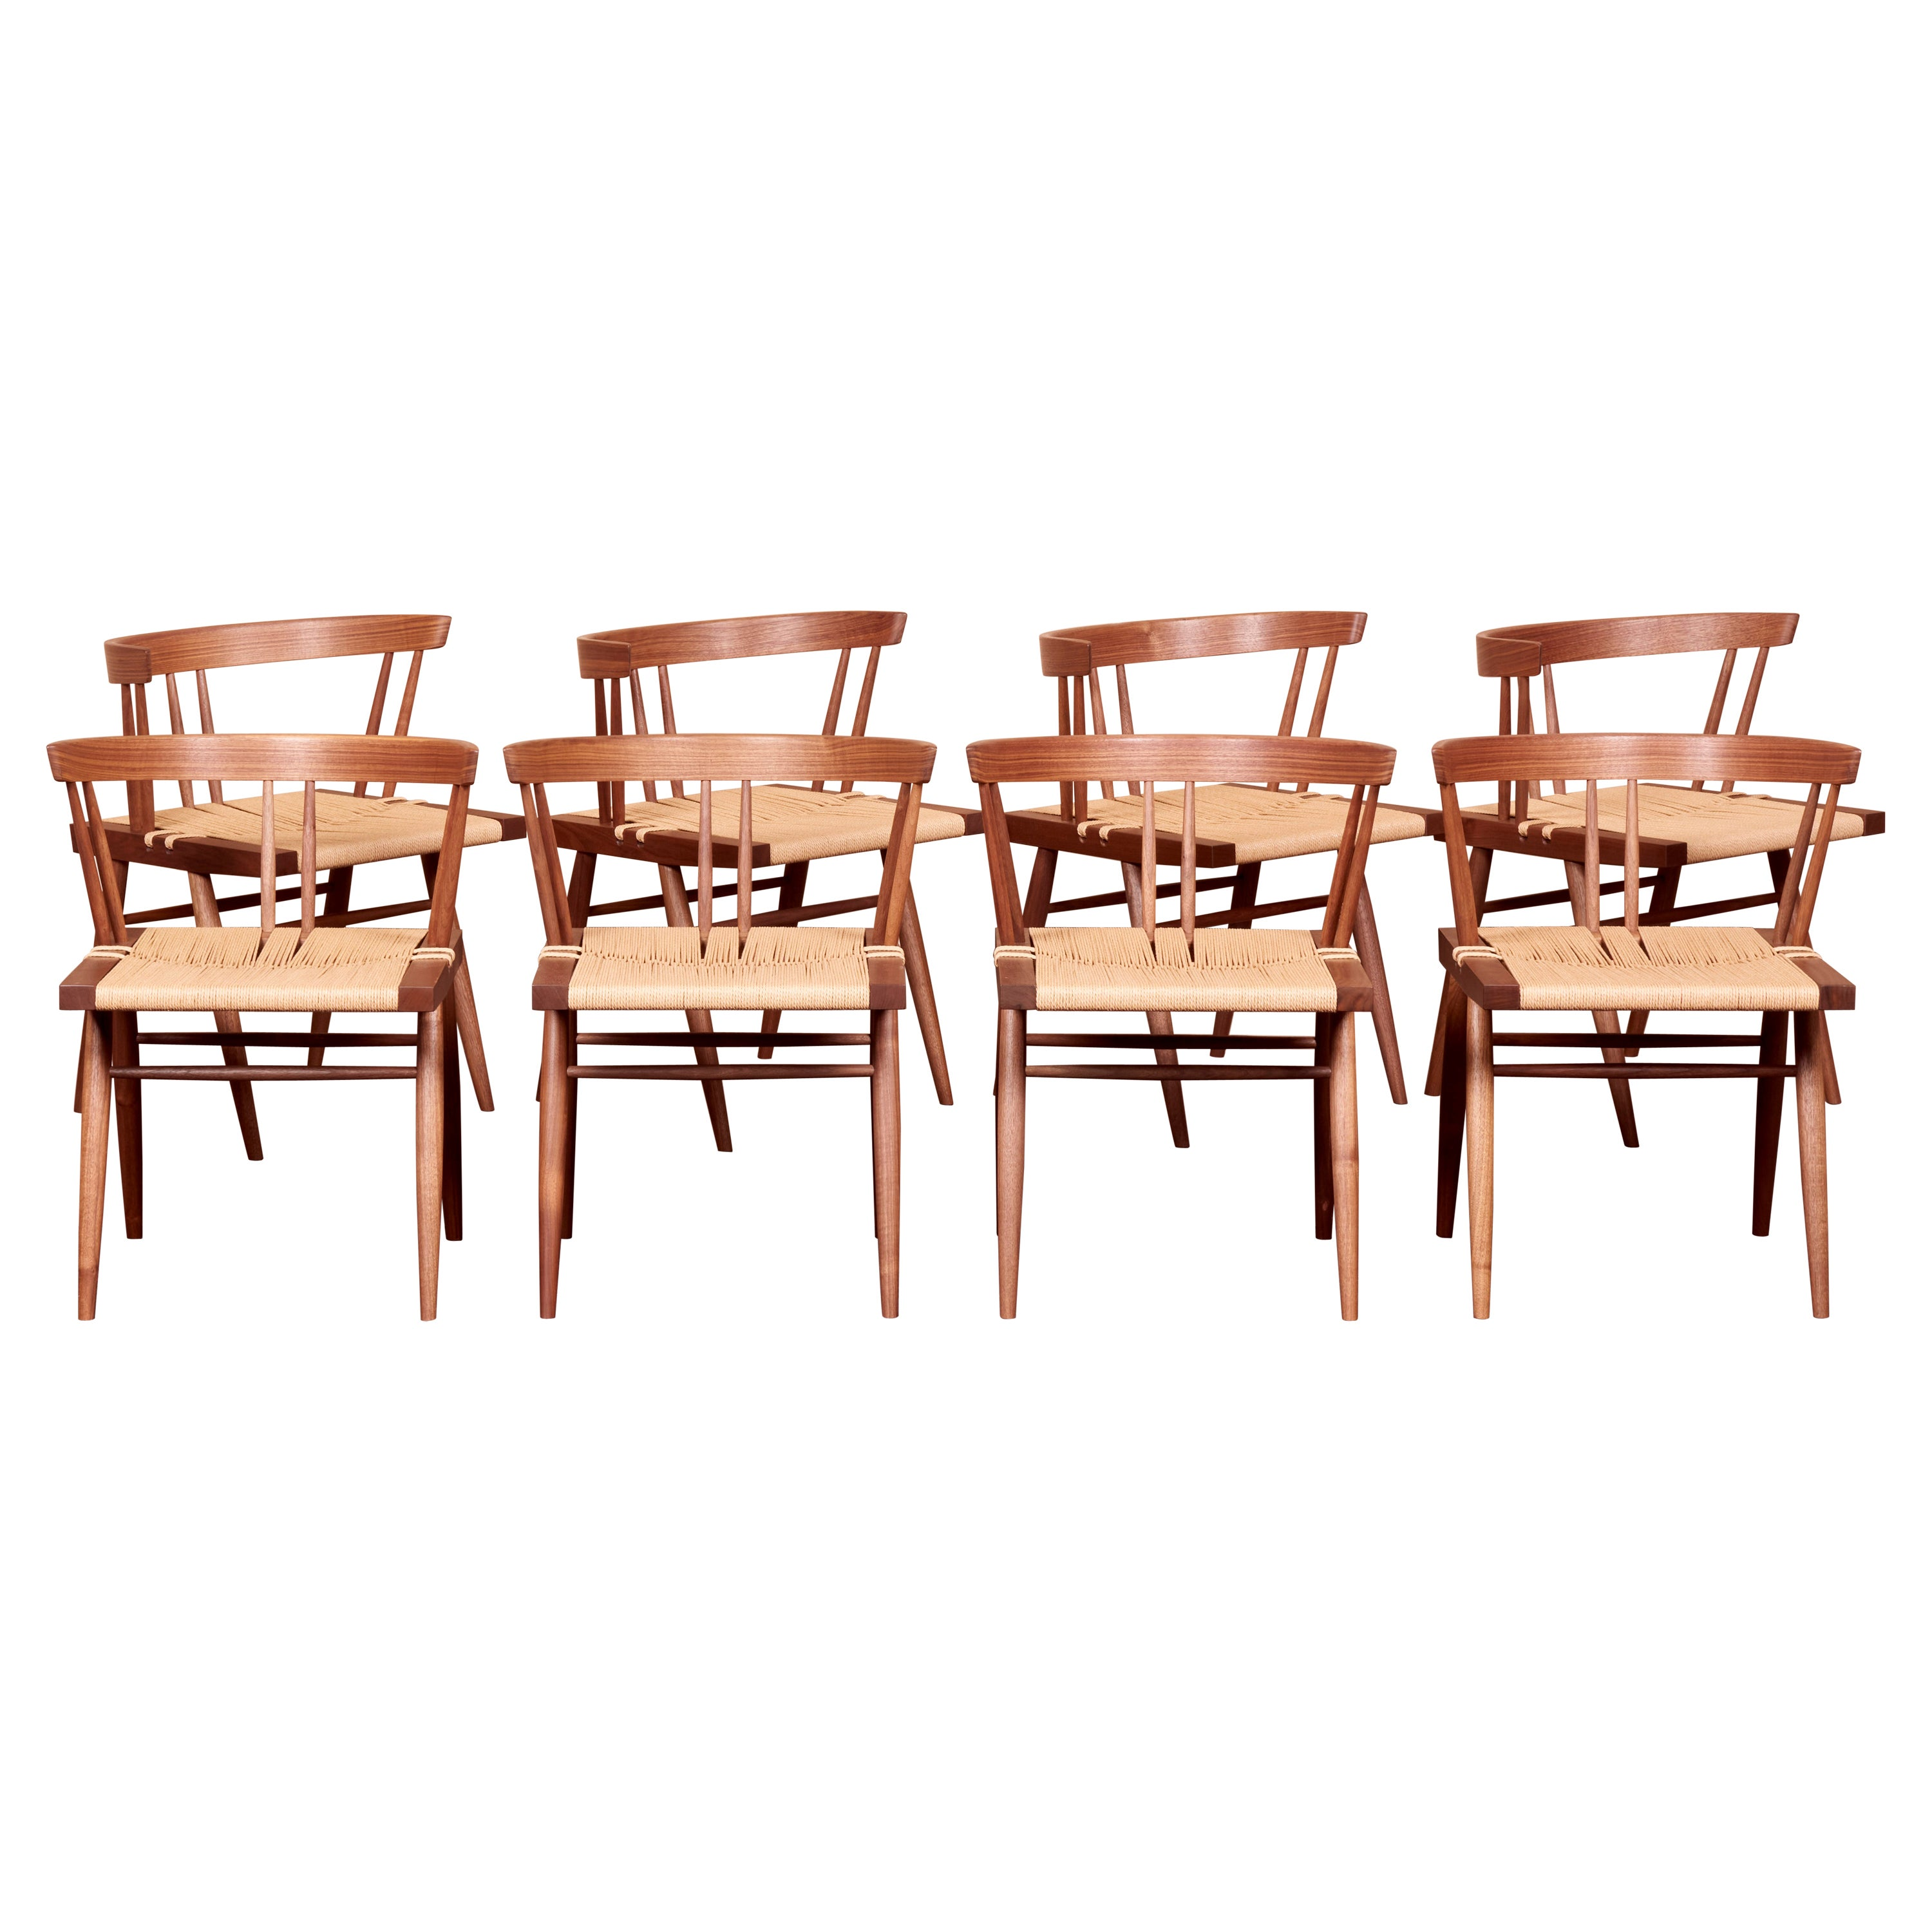 Set of 8 Grass Seated Dining Chairs by George Nakashima Studio, US, 2021